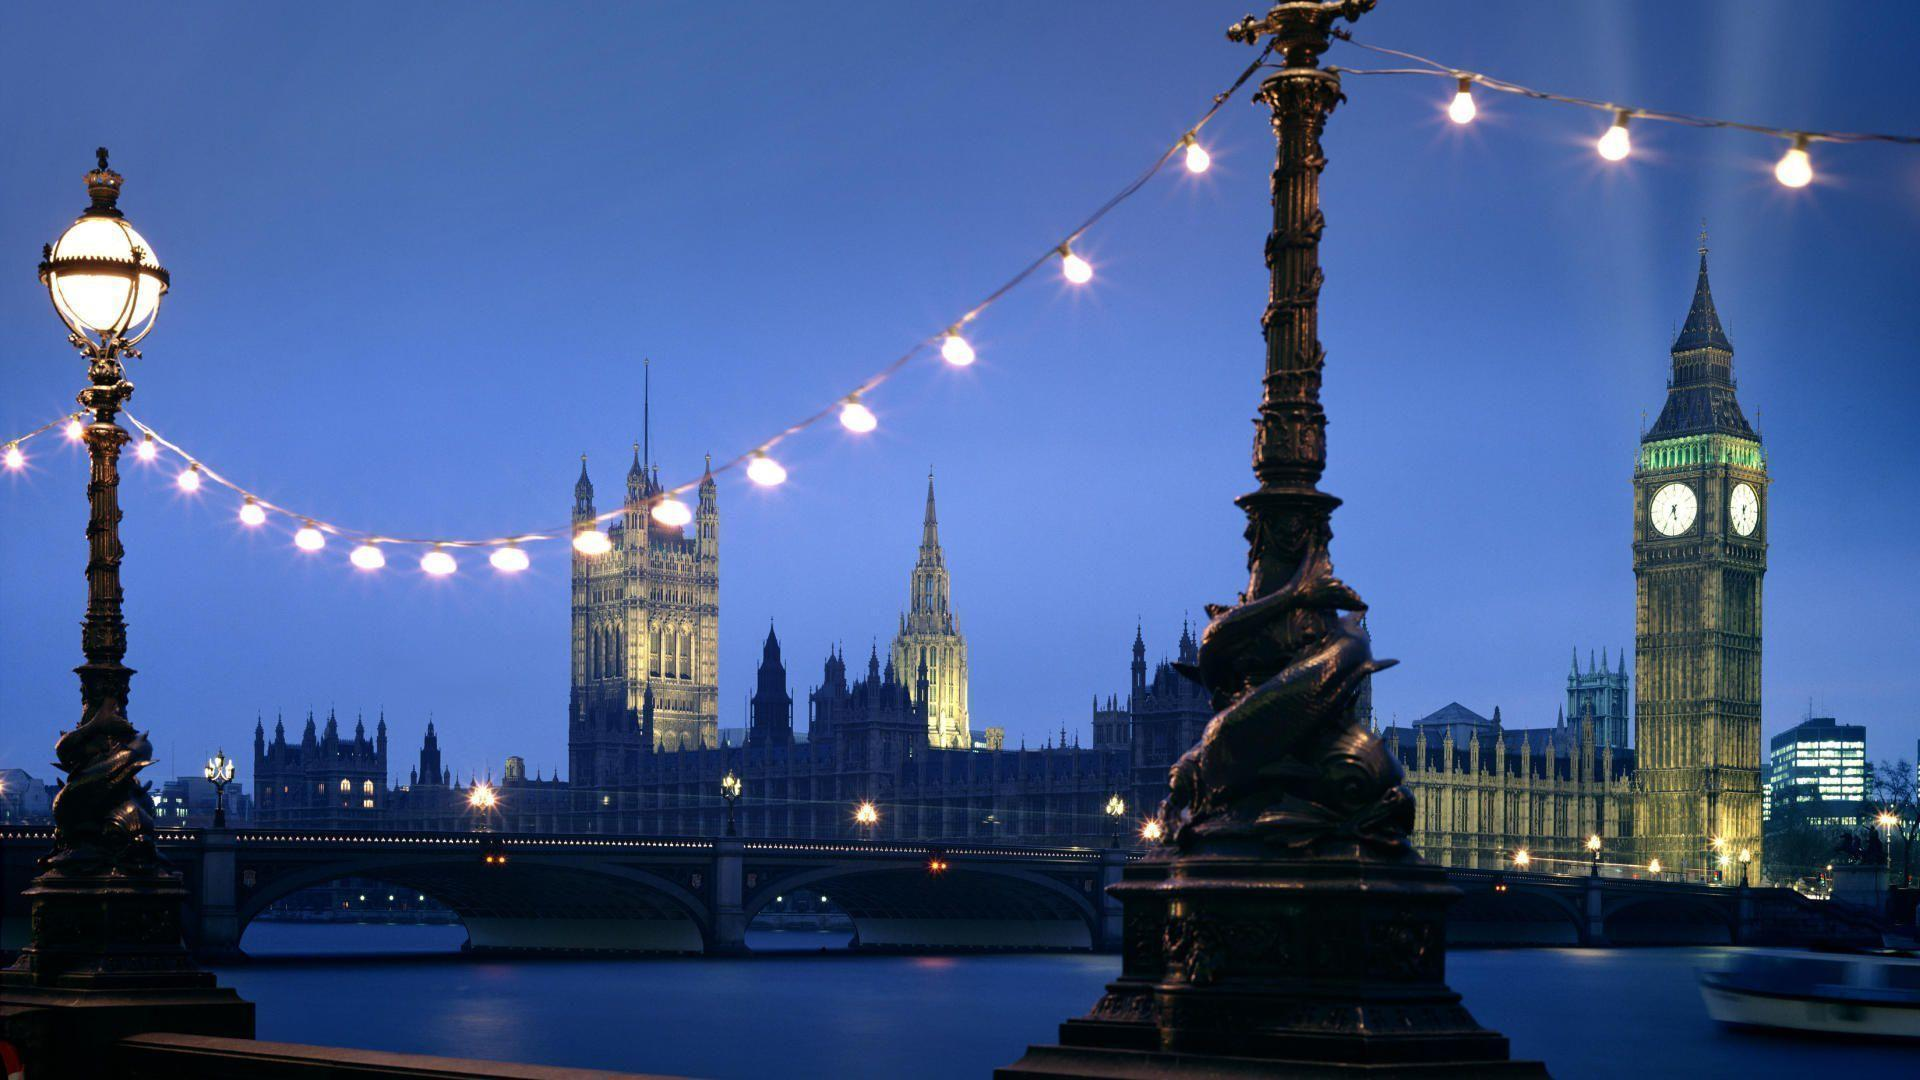 Westminster London England Wallpapers HD Wallpapers